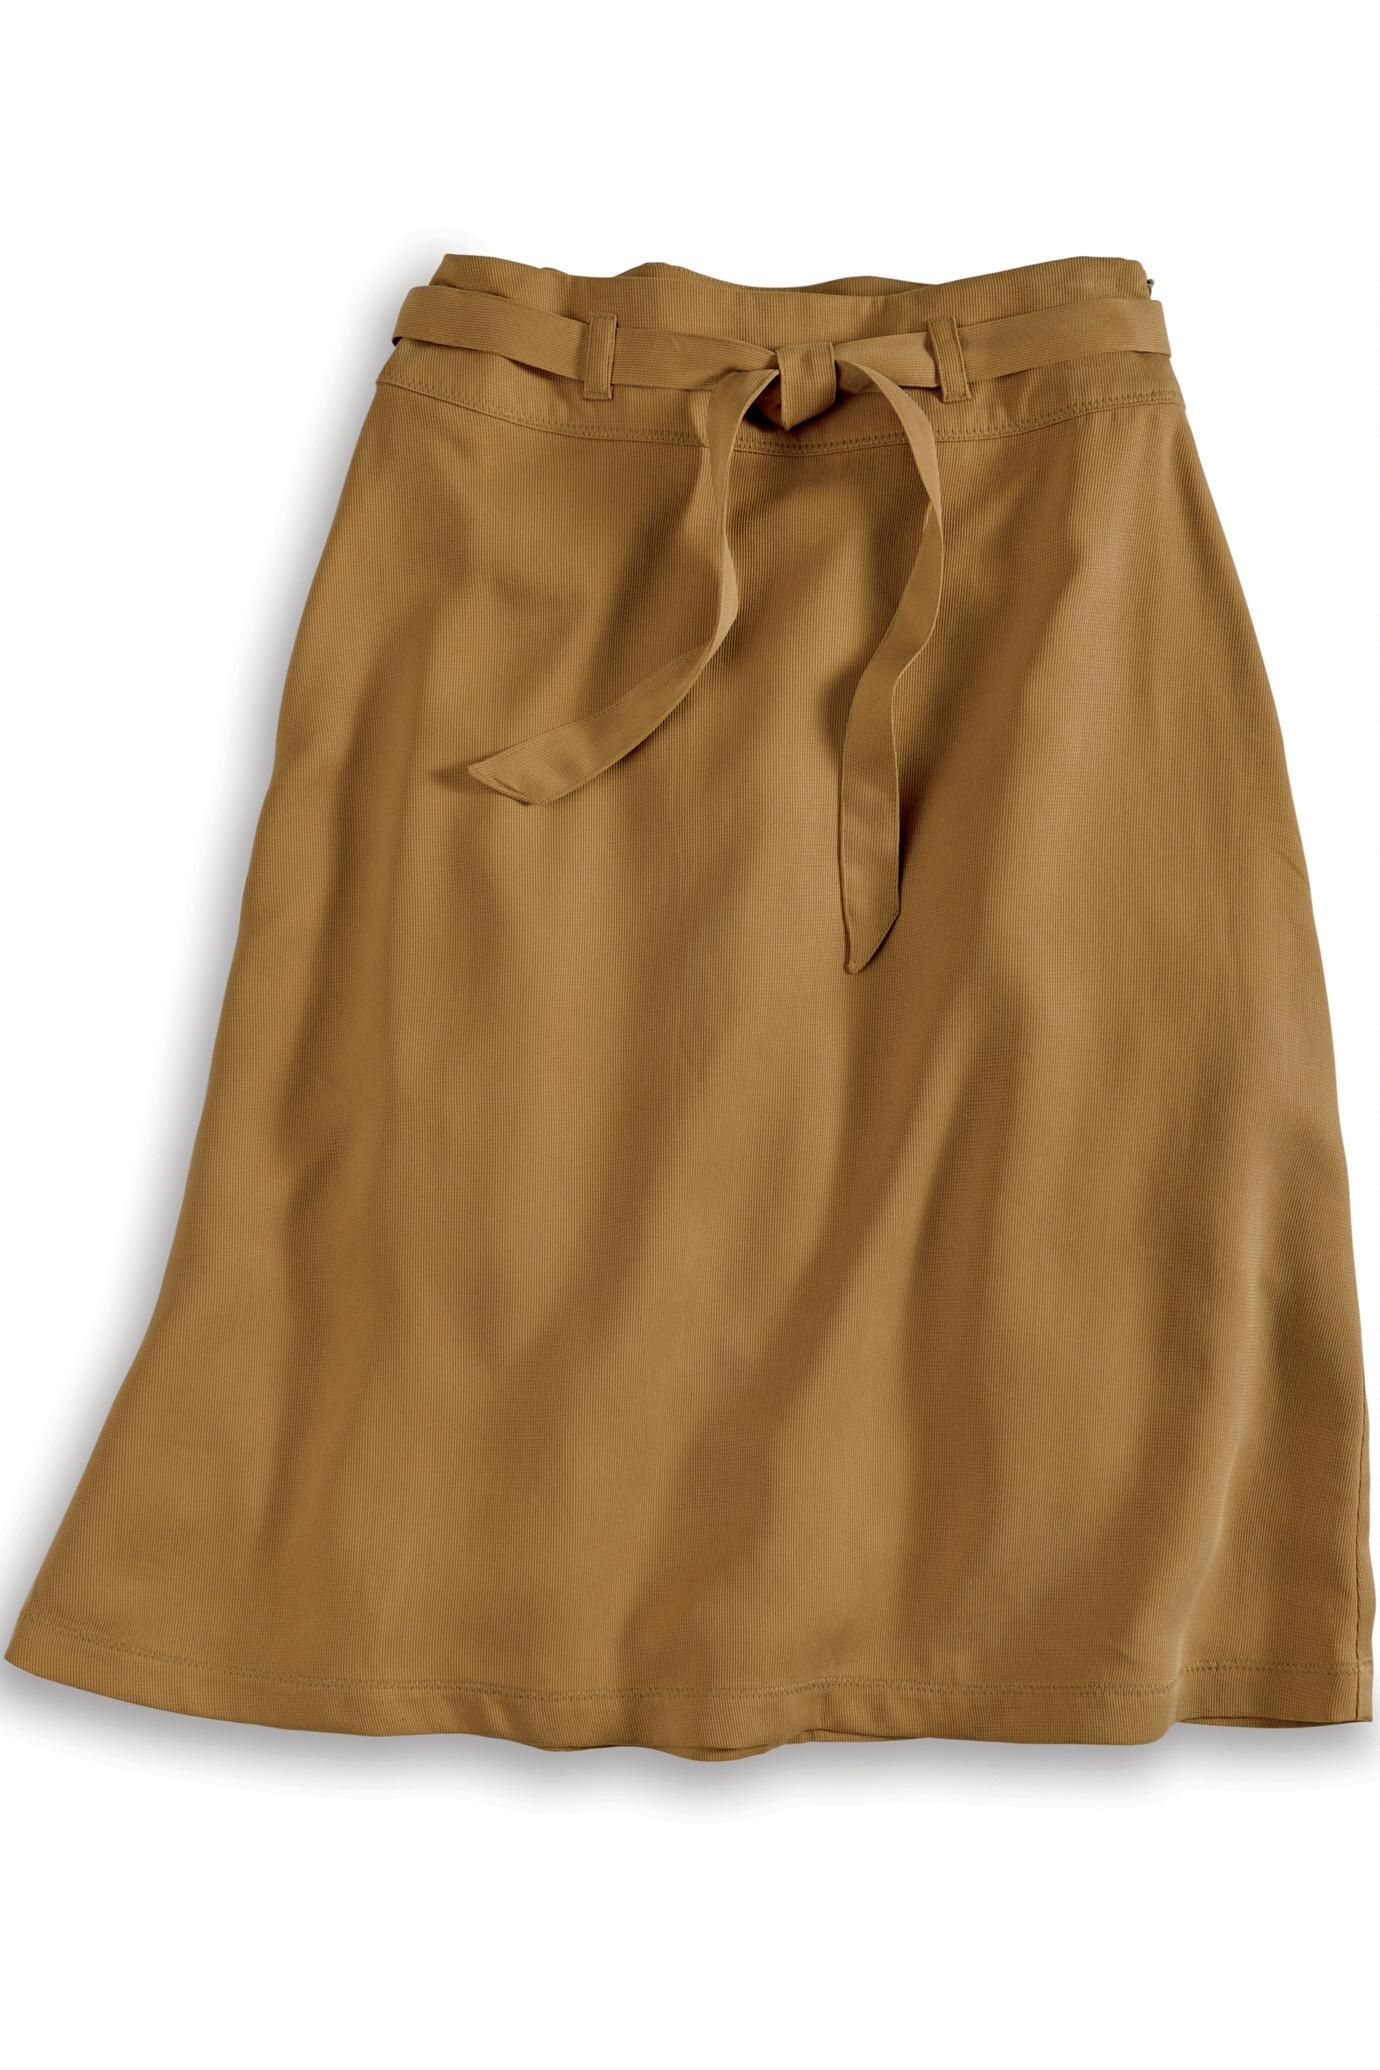 Tencel dobby skirt exceptional casual clothing for men u women from